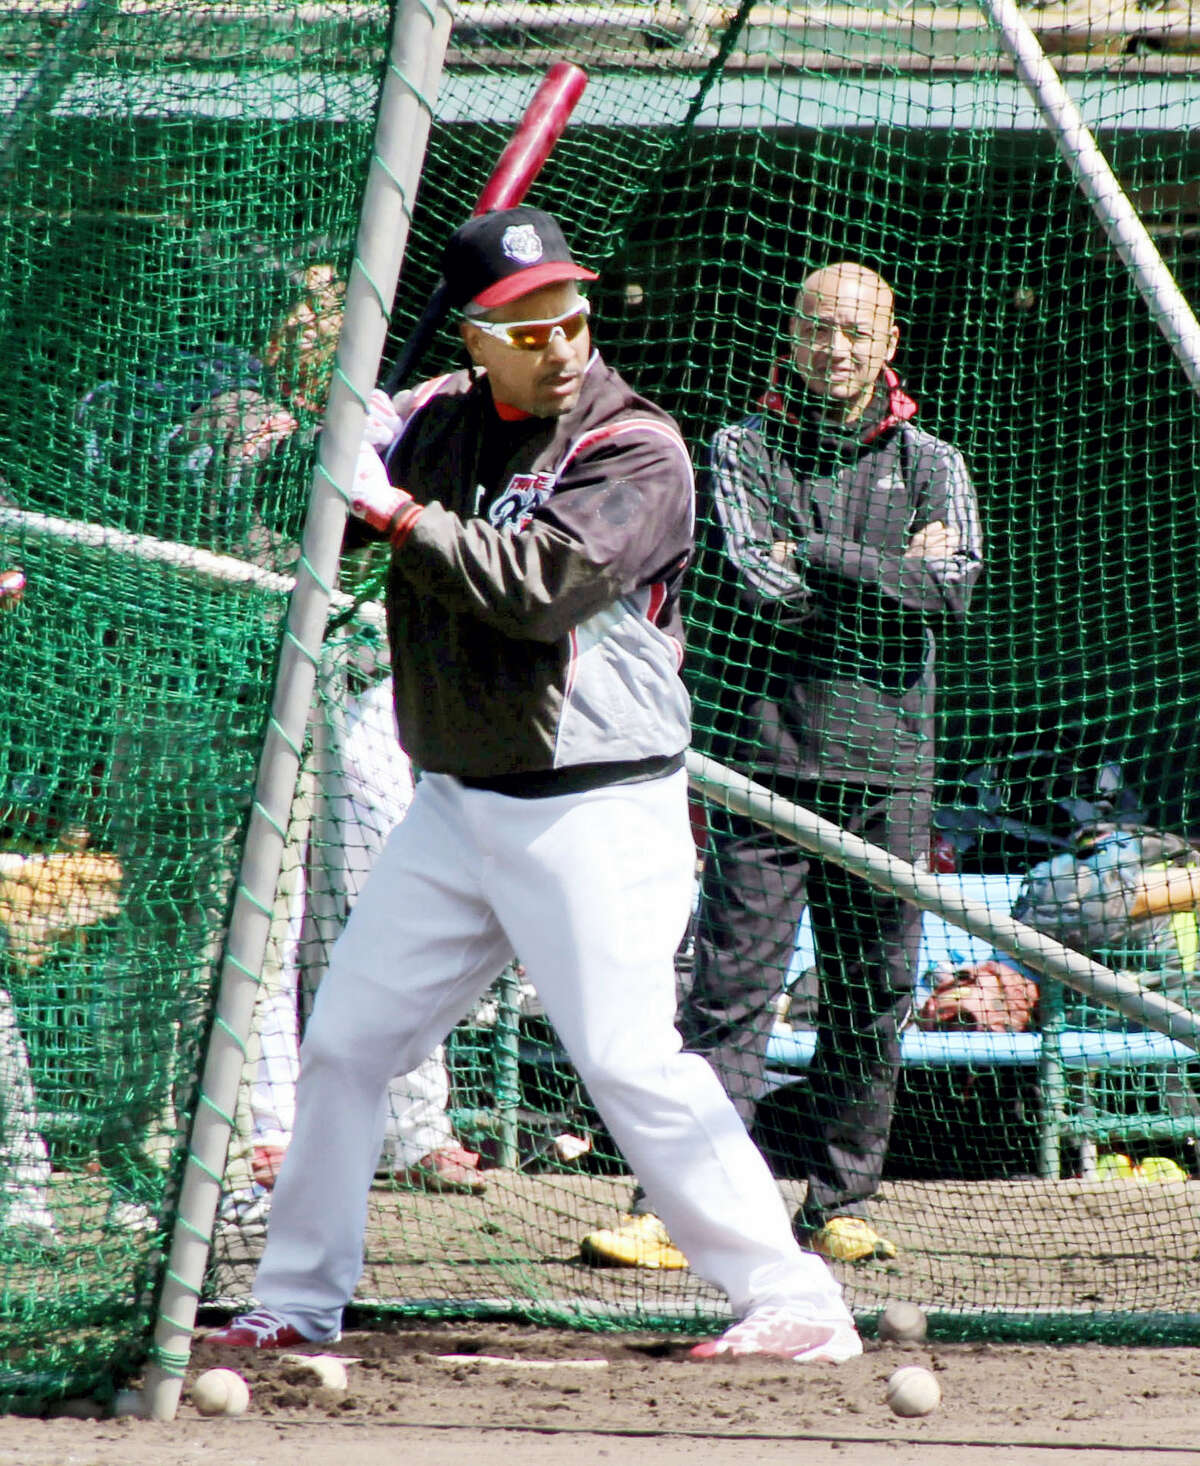 Former major league slugger Manny Ramirez practices batting during a workout in Kochi, western Japan. Ramirez is set to begin the next chapter of his baseball odyssey playing for the Kochi Fighting Dogs of Japan's independent Shikoku Island League.